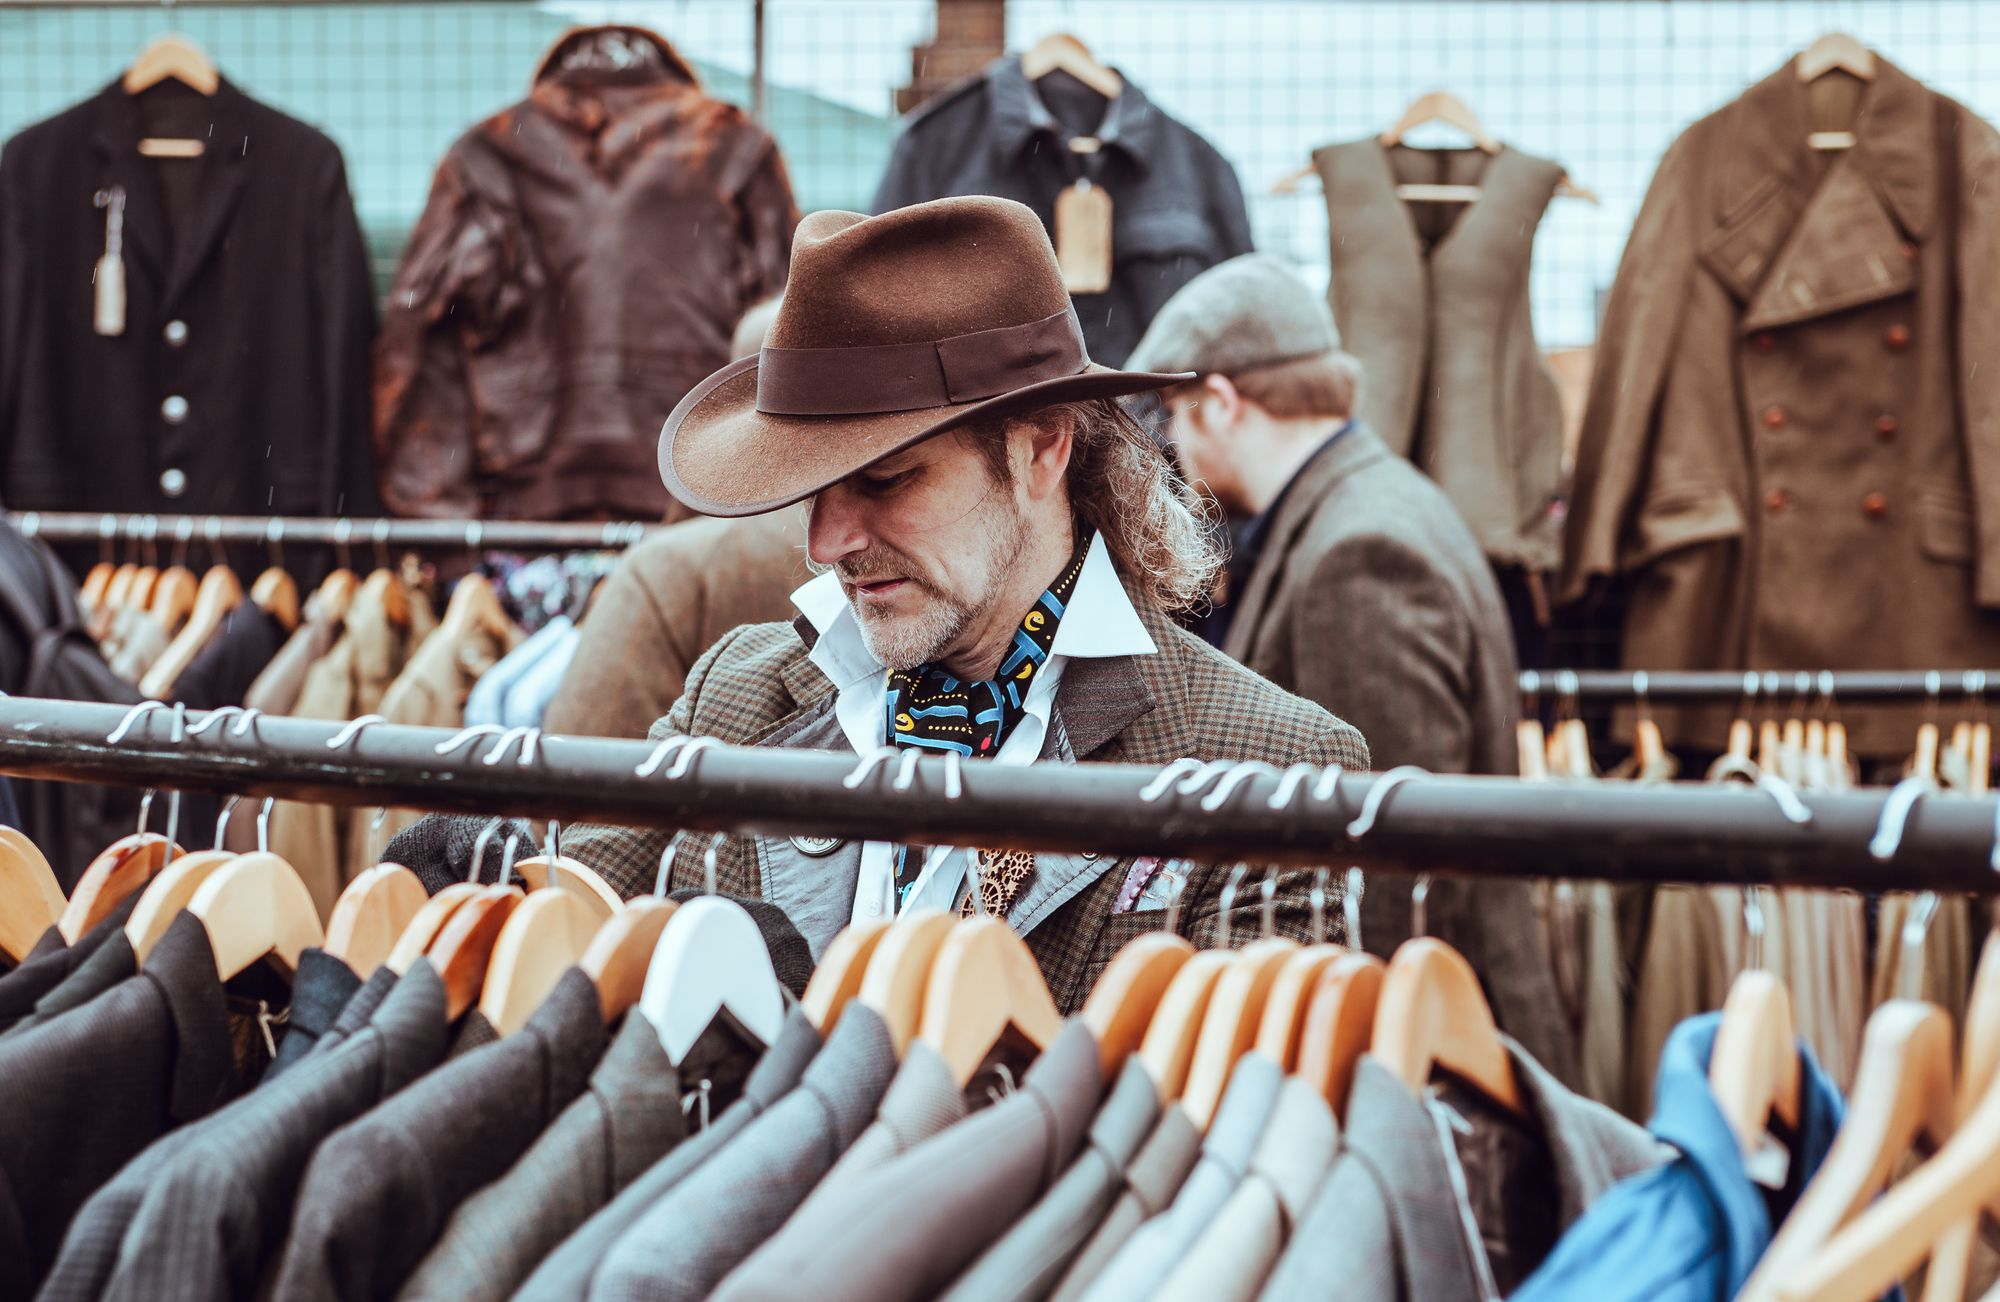 Things you should know while shopping men's clothes online